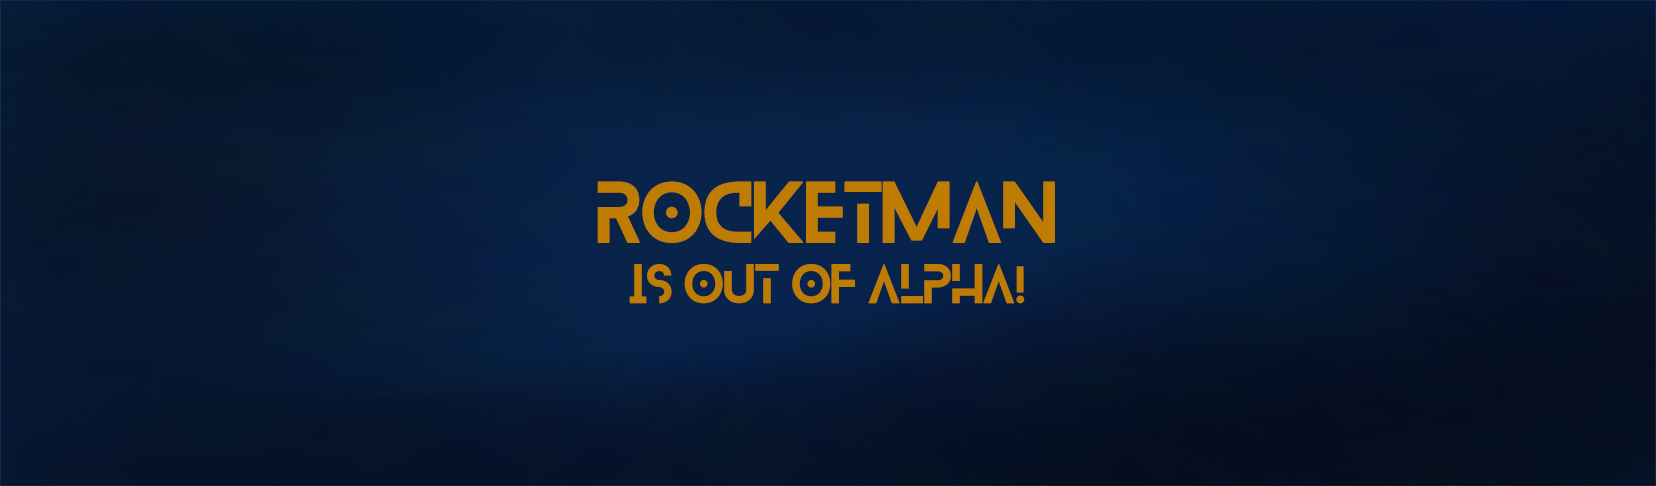 Rocketman out of alpha